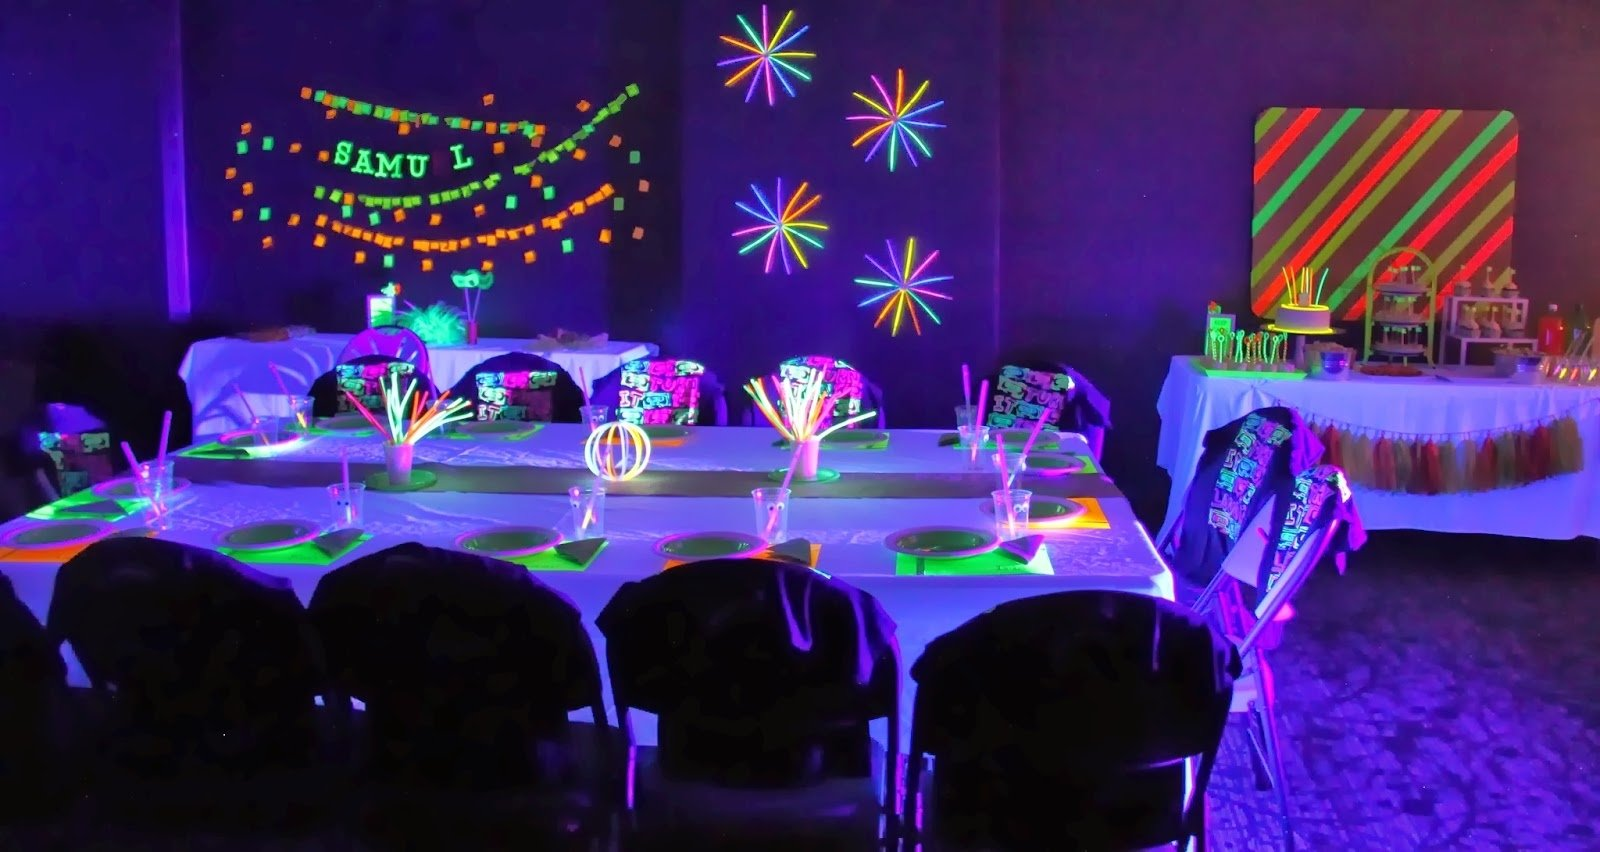 10 Wonderful Party Ideas For A 13 Year Old neon party ideas for 13 year olds parties birthday party ideas 1 2020